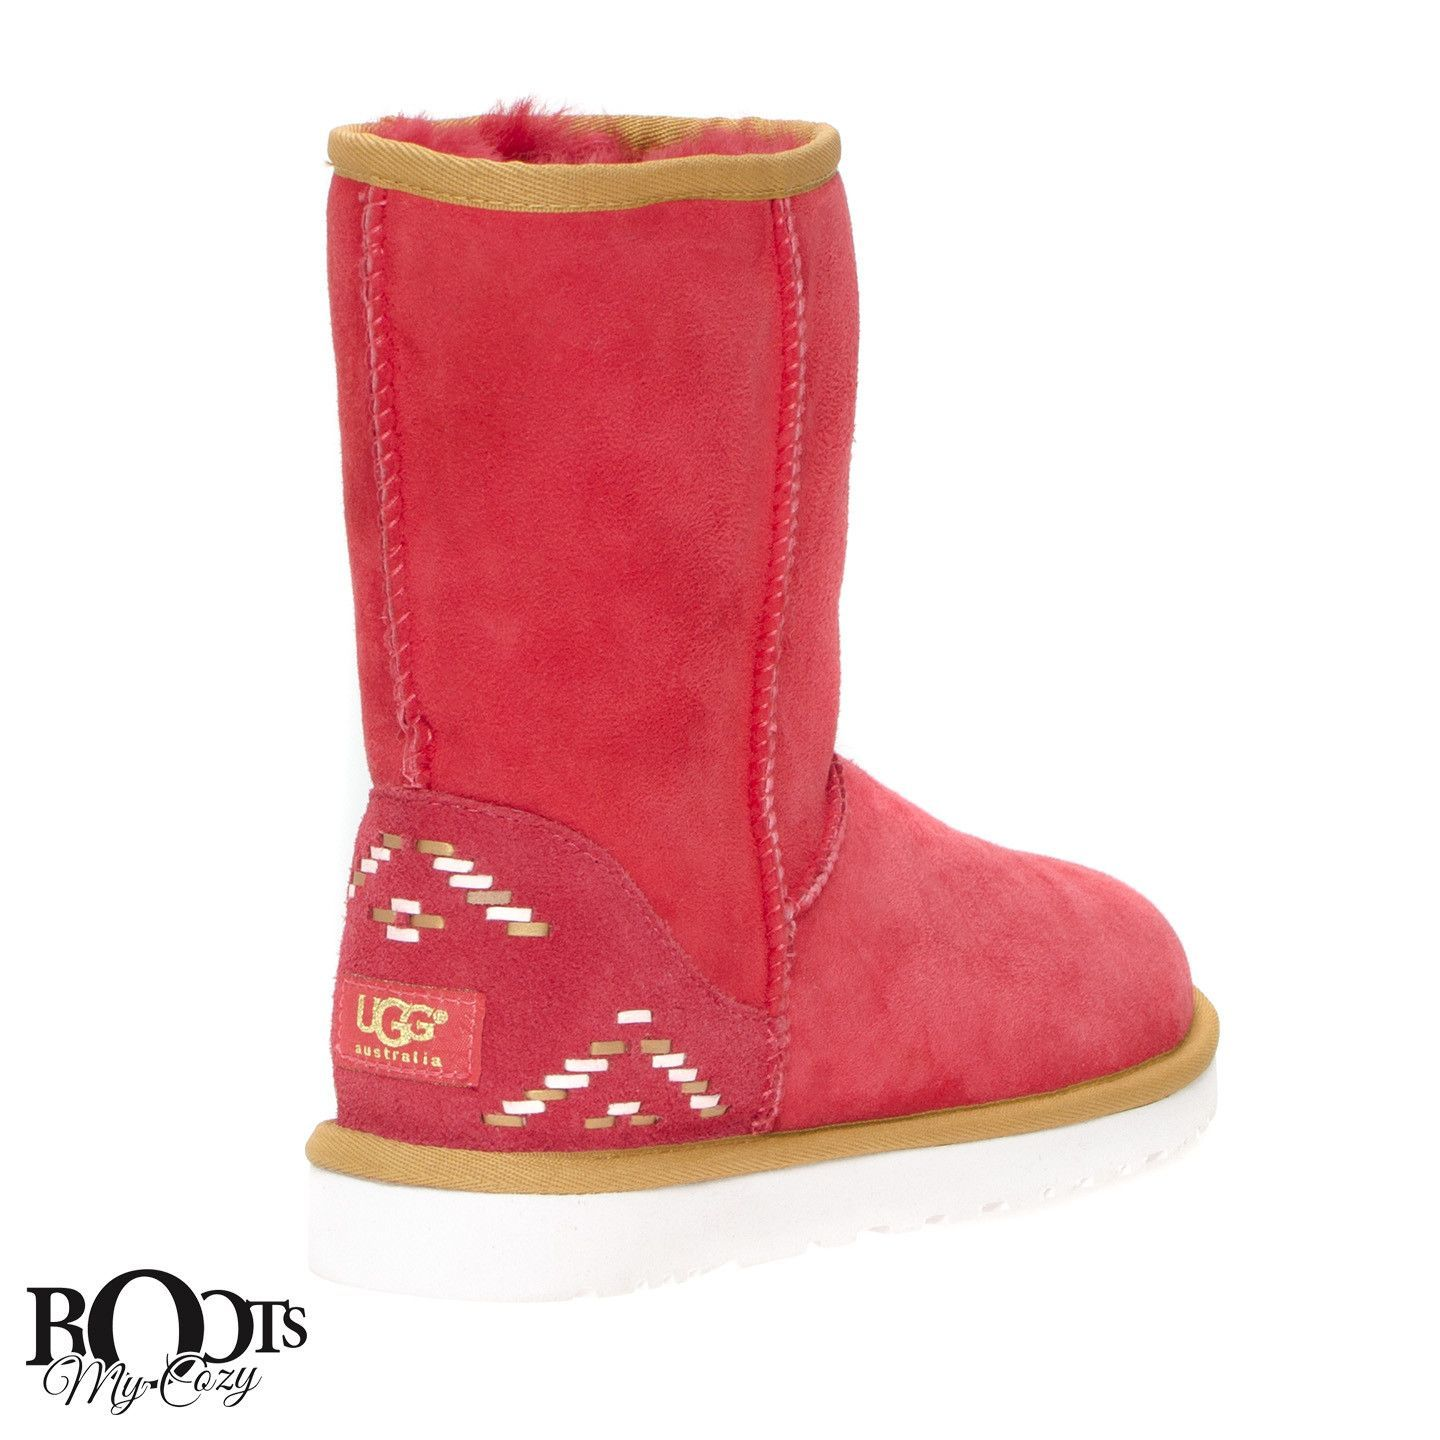 UGG CLASSIC SHORT RUSTIC WEAVE SCARLET BOOTS - WOMEN'S